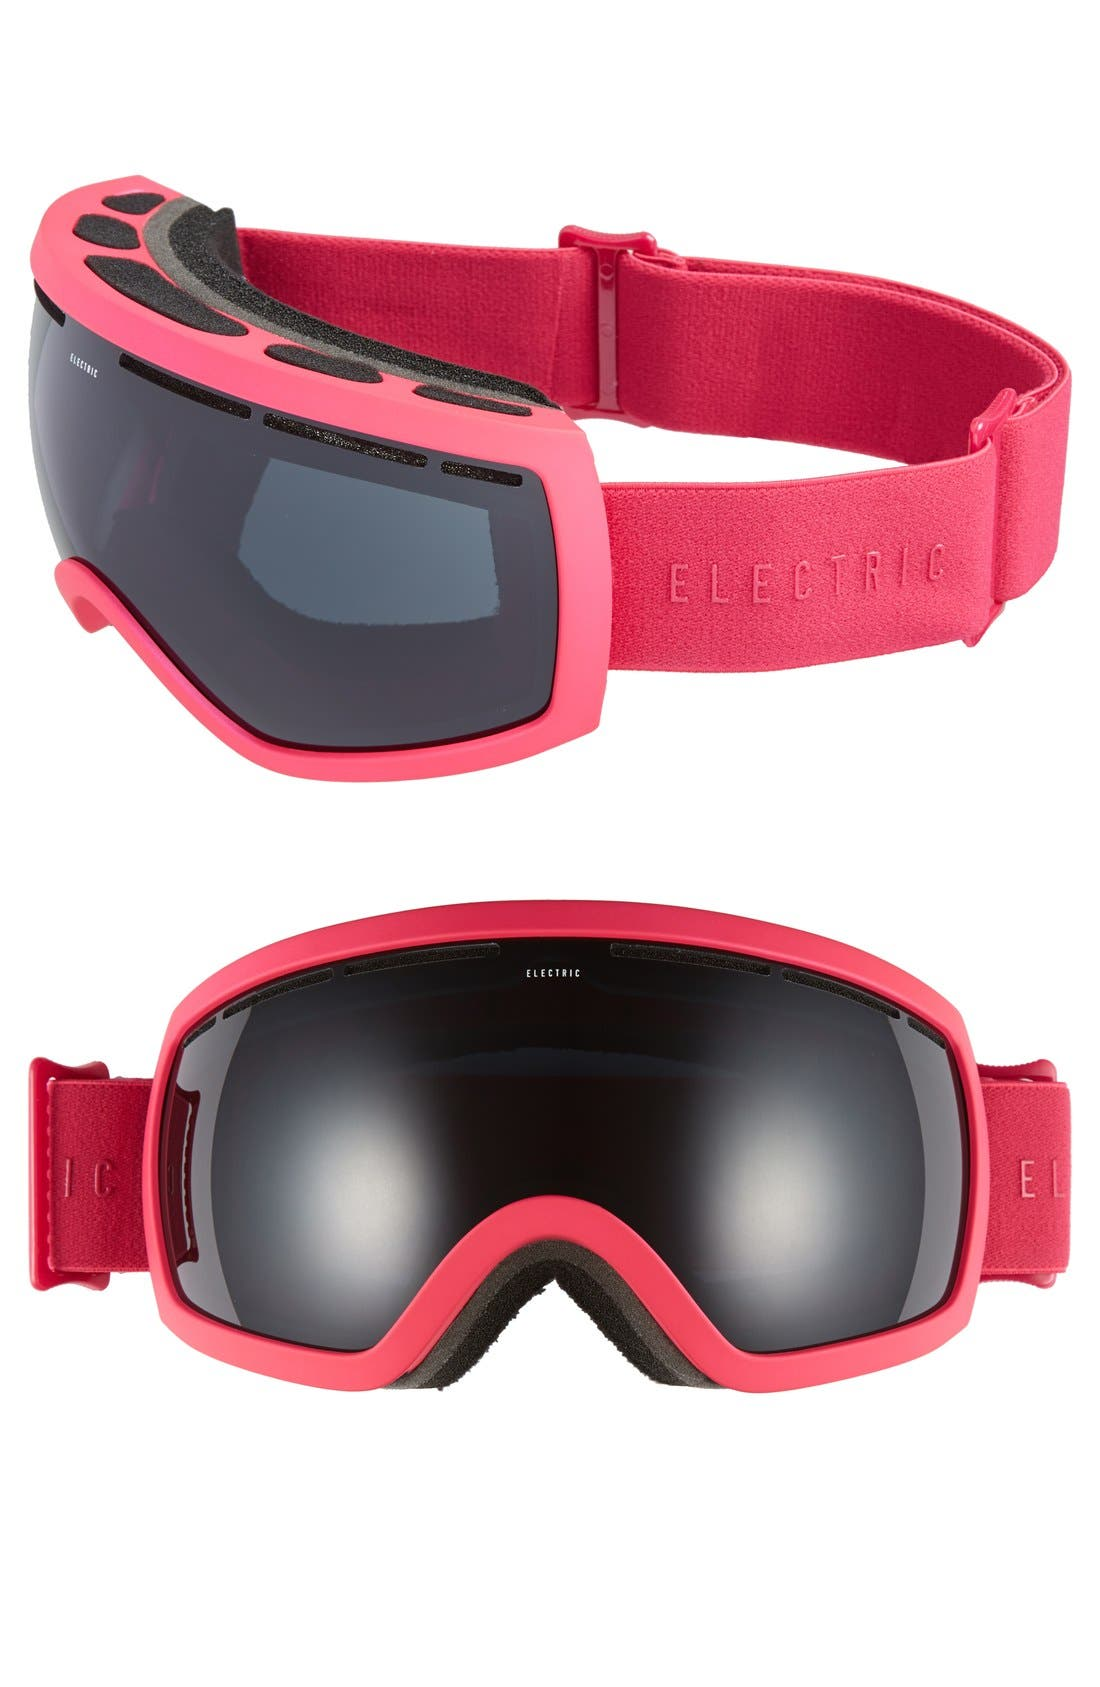 EG 2.5 215mm Snow Goggles,                             Main thumbnail 1, color,                             Solid Berry/ Jet Black